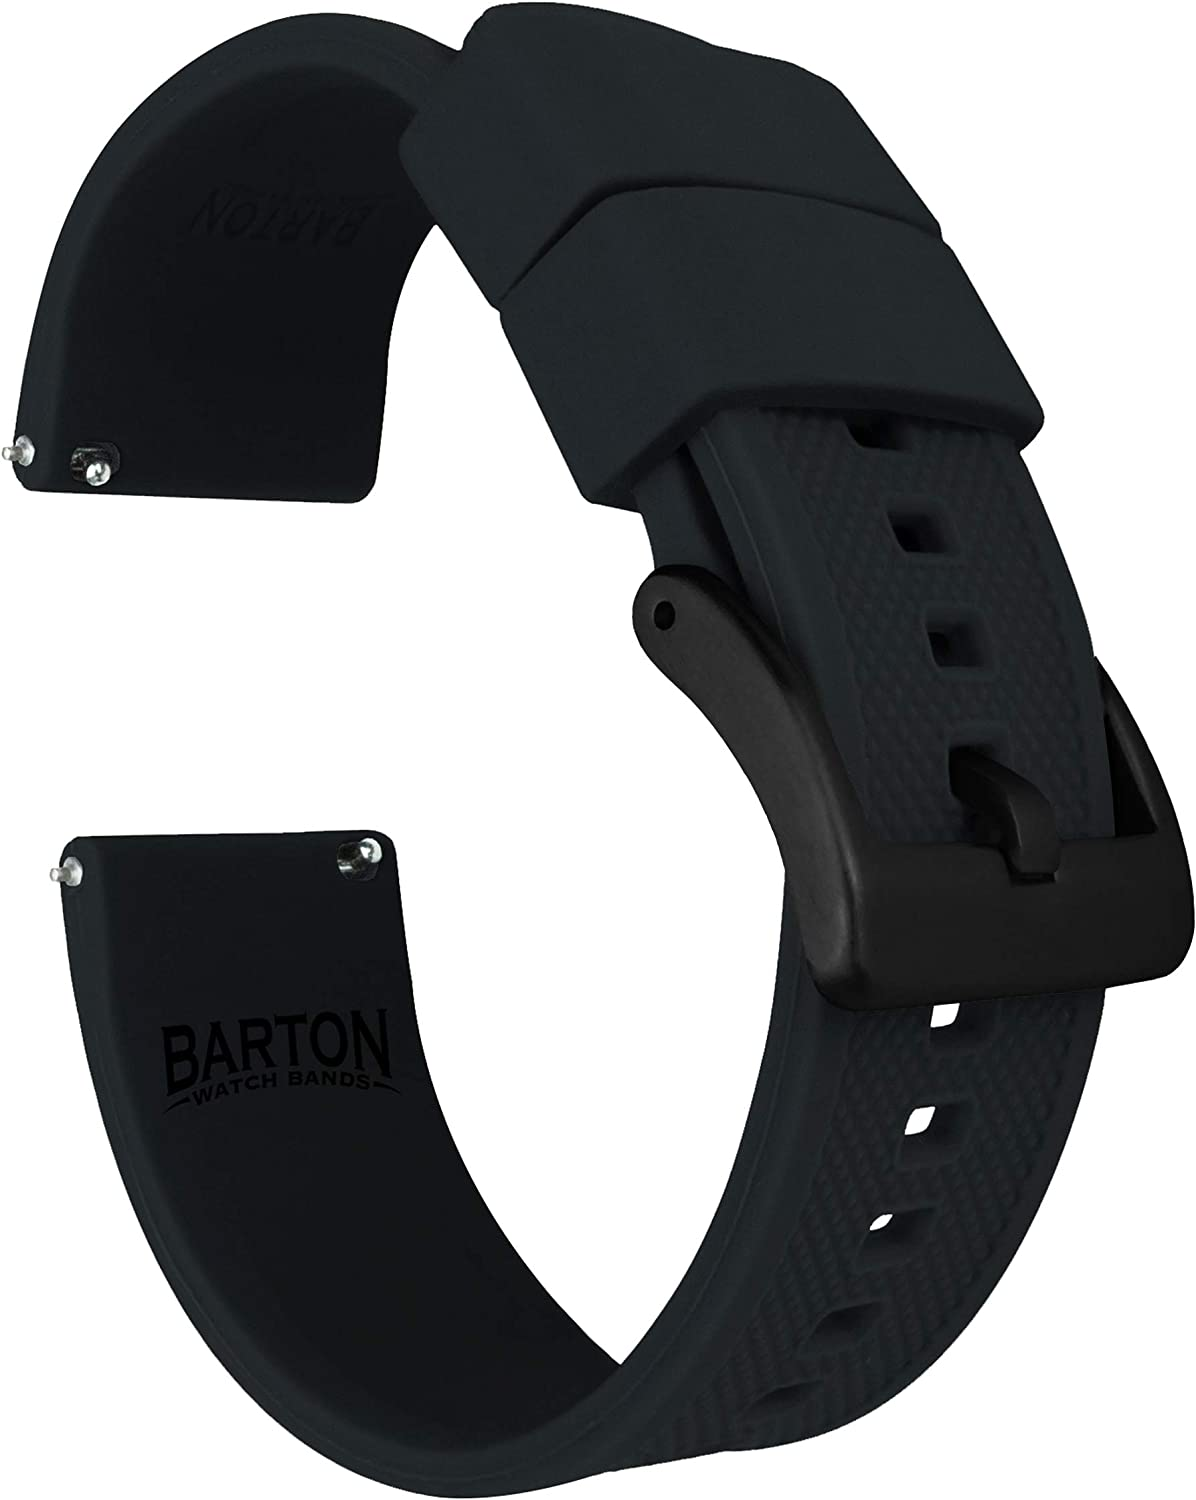 BARTON Watch Bands - Elite Silicone Watch Straps - Black Buckle Quick Release - Choose Color & Width - 18mm, 19mm, 20mm, 21mm, 22mm, 23mm & 24mm - Textured Rubber Watch Straps